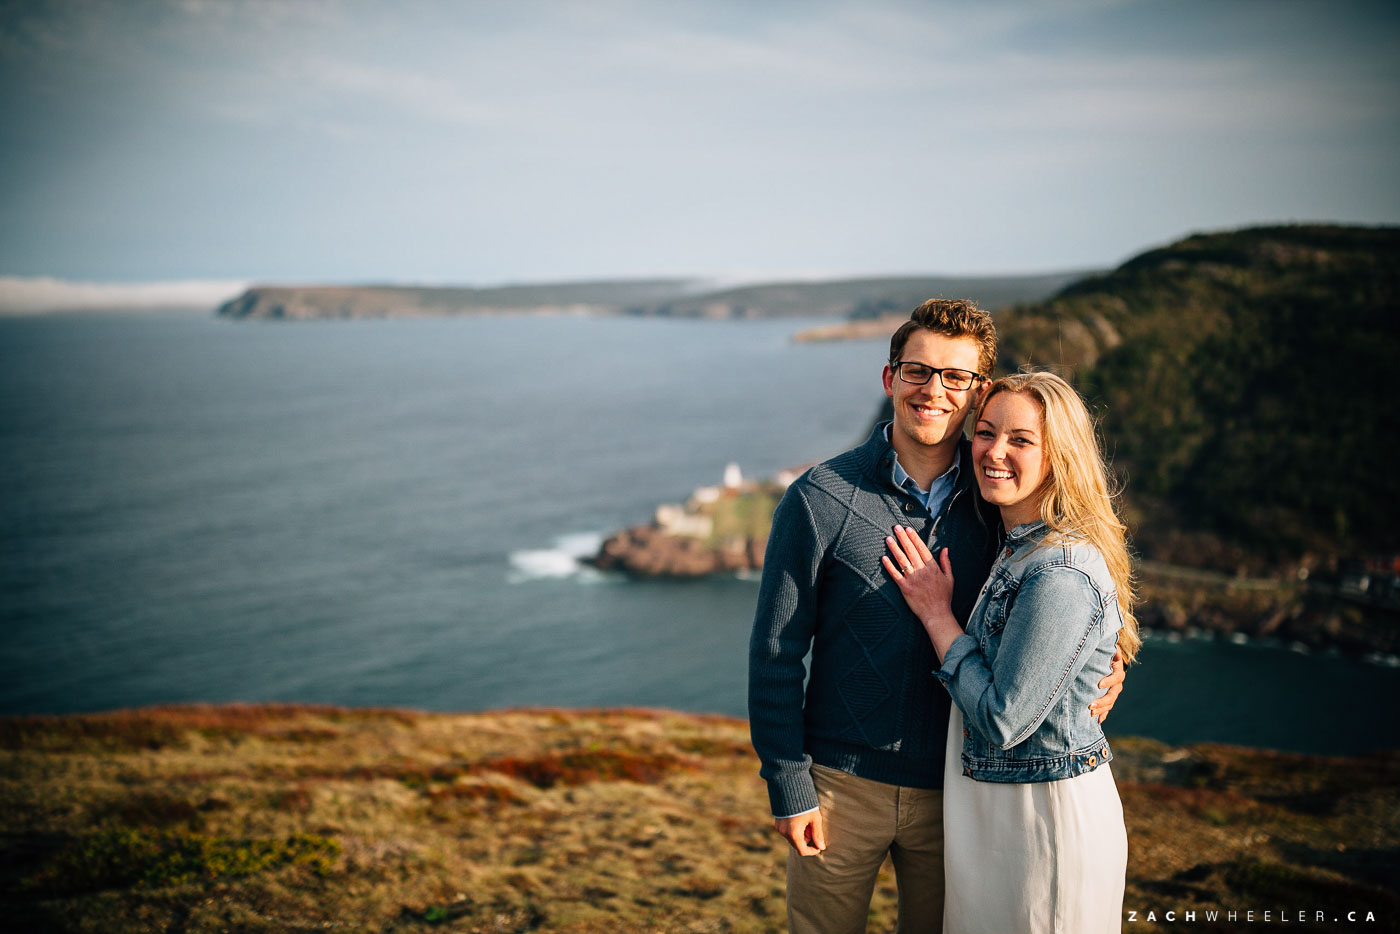 stjohns-engagement-photography-laura-steve-78